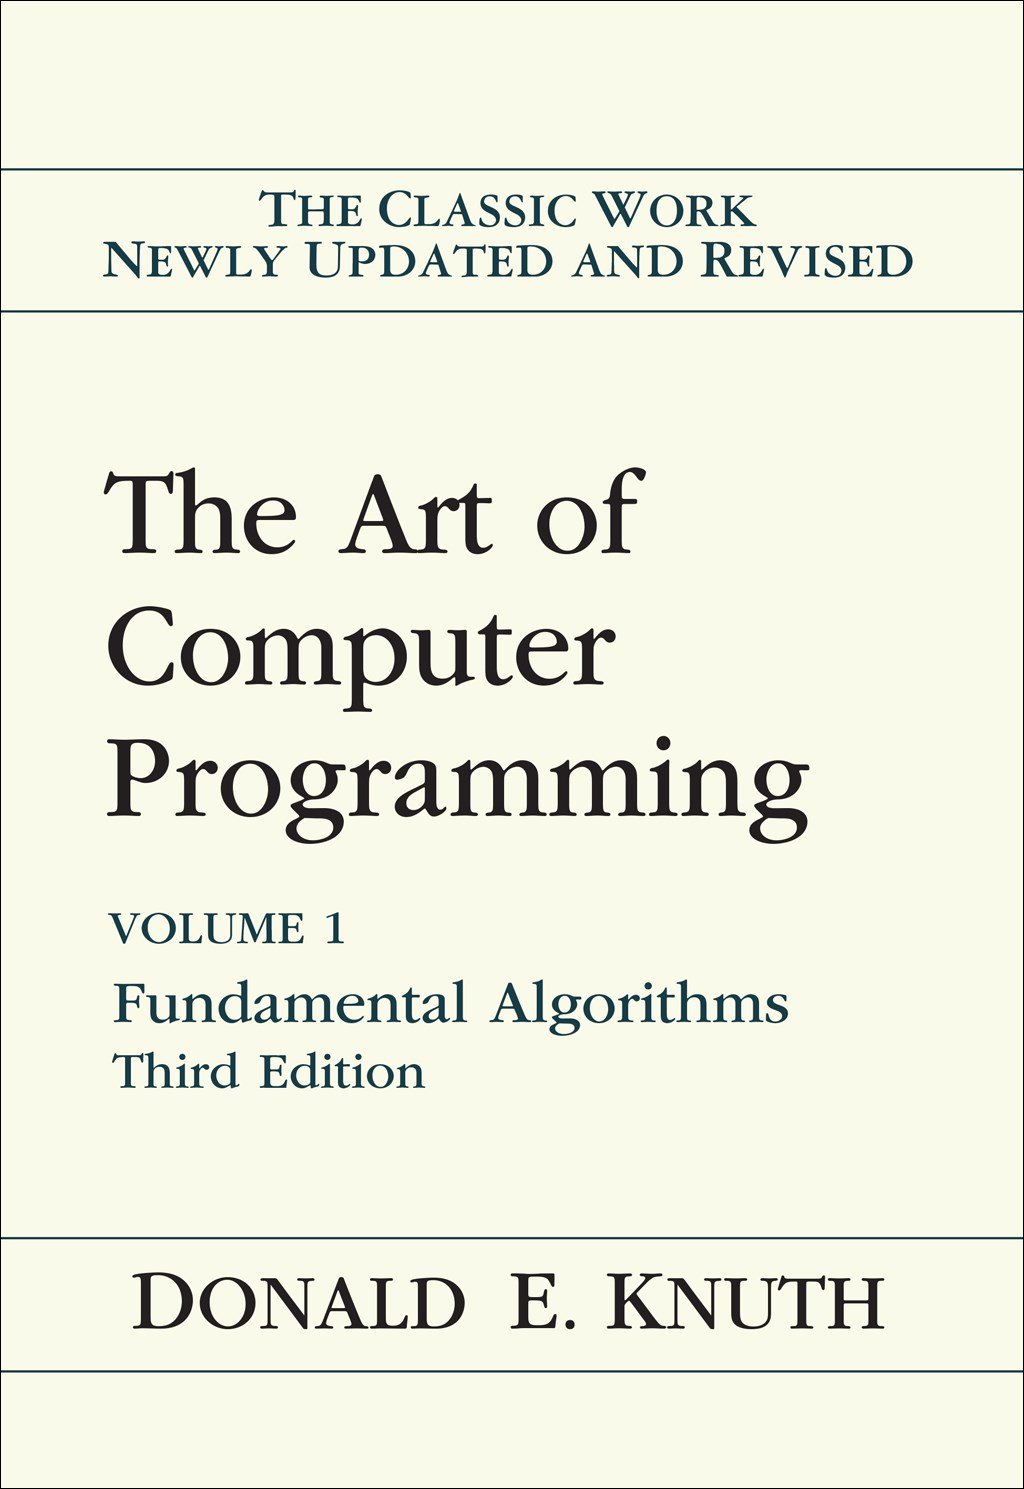 Art of Computer Programming, Volume 1: Fundamental Algorithms, 3rd Edition